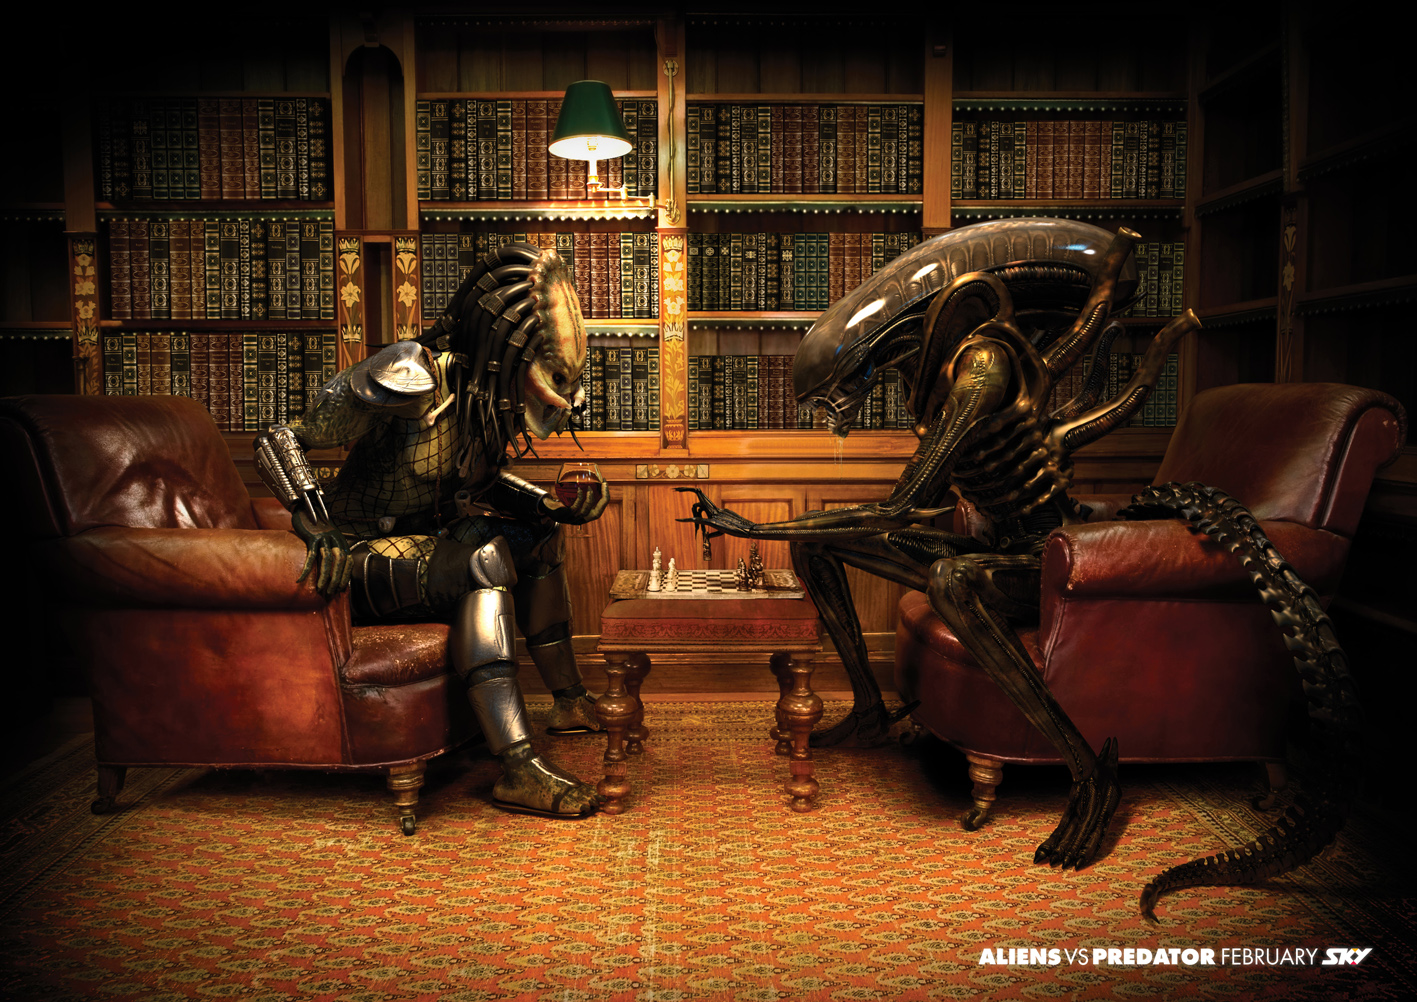 https://i2.wp.com/theinspirationroom.com/daily/print/2009/2/aliens_vs_predator_chess.jpg